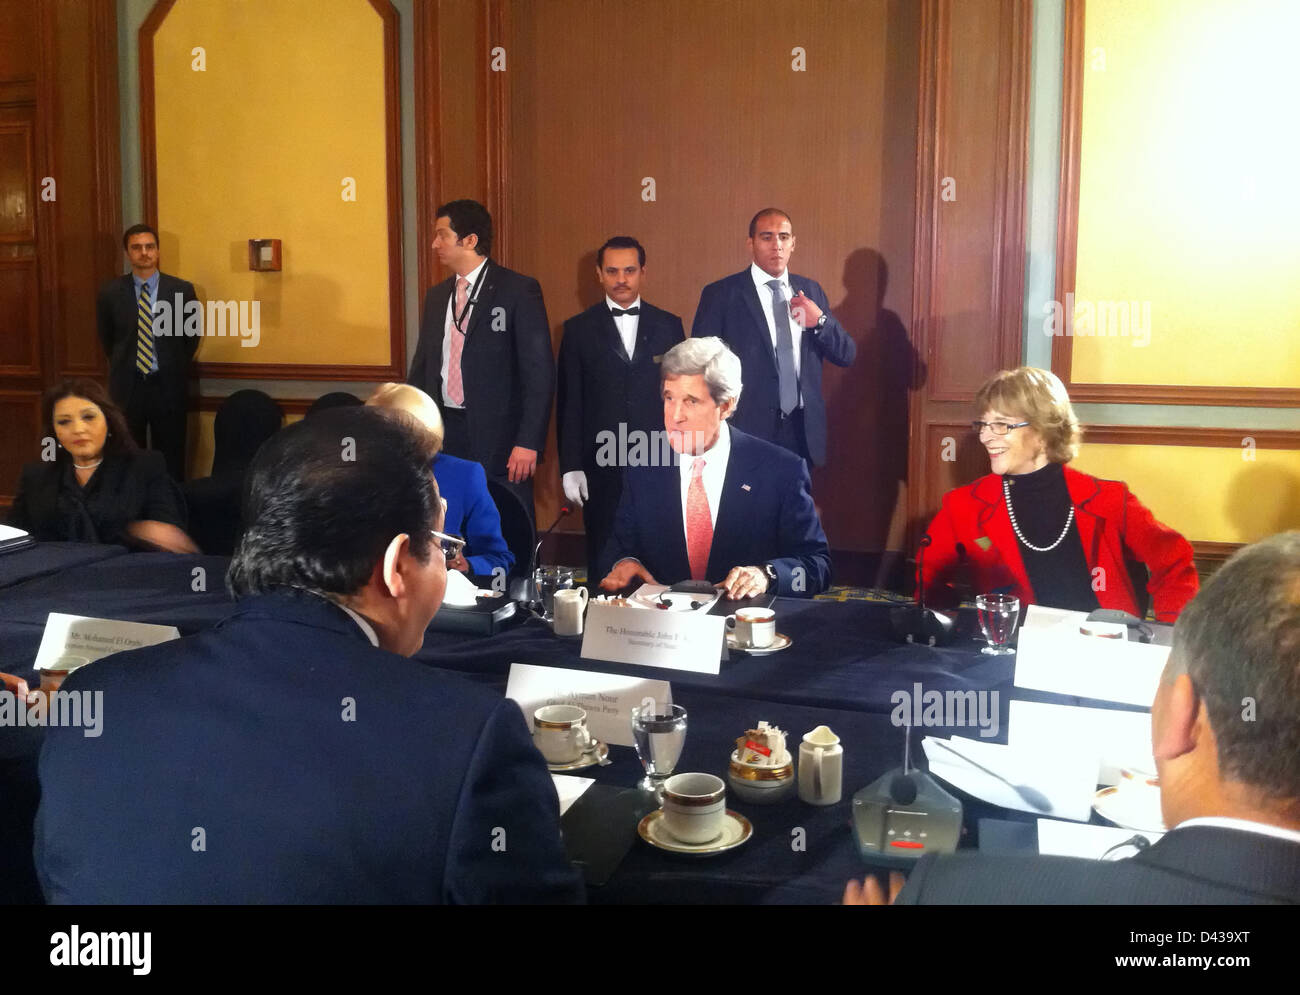 US Secretary of State John Kerry meets with opposition leaders March 3, 2013 in Cairo, Egypt. Kerry is on an 11 - Stock Image